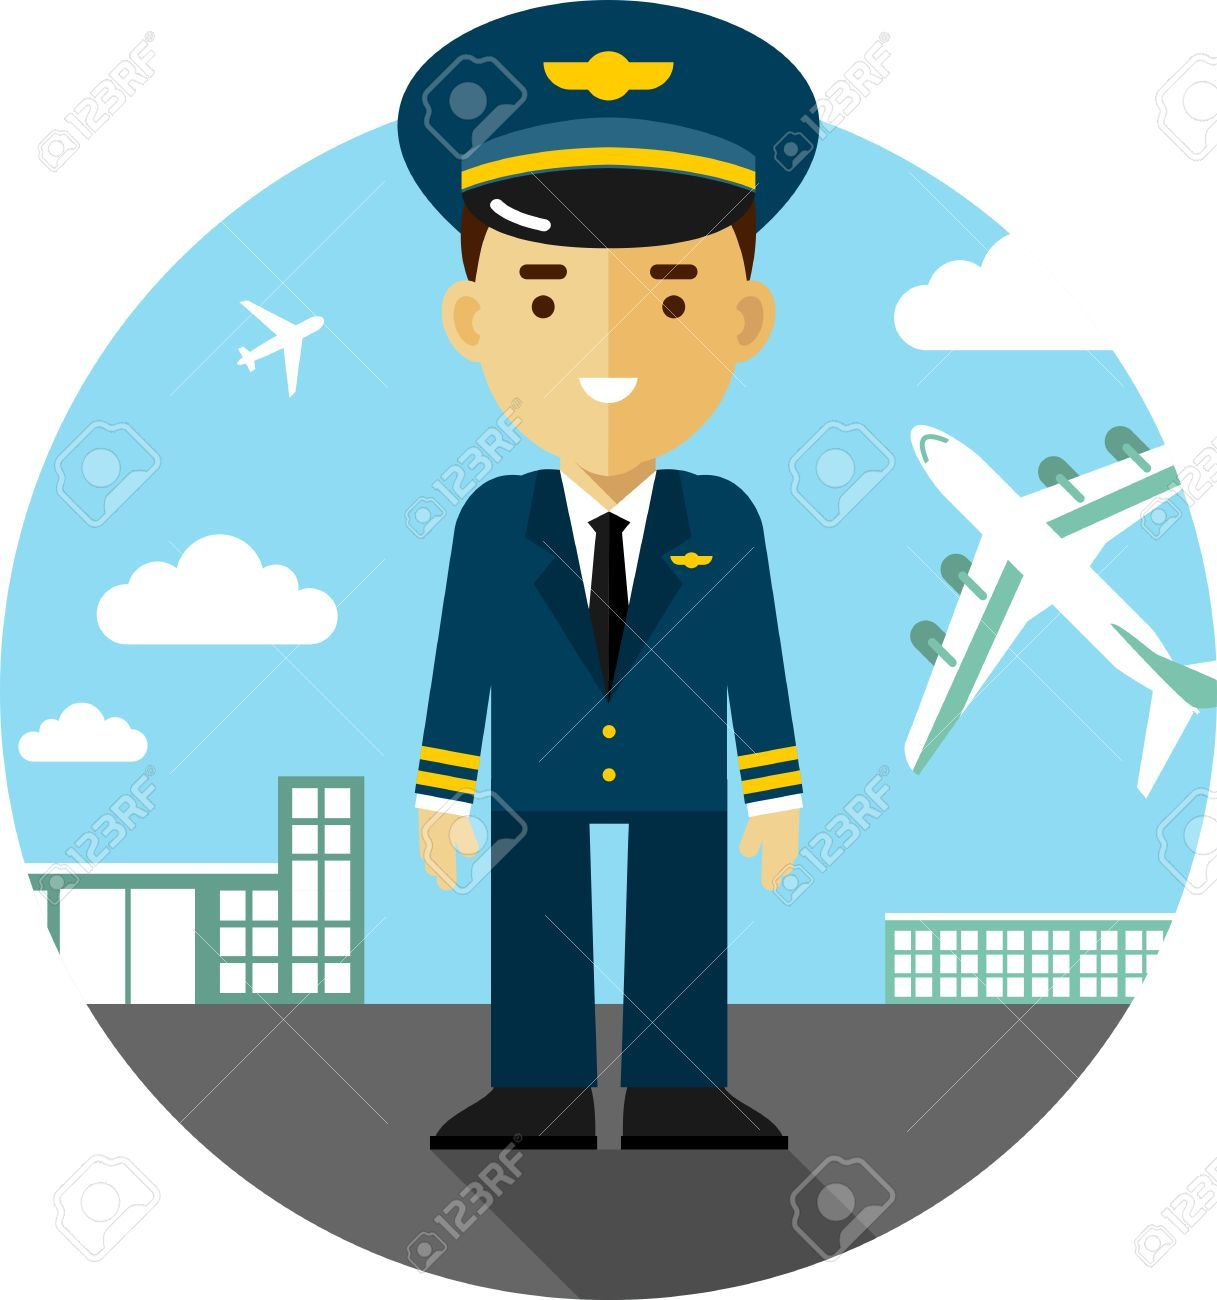 Airport clipart animated. Image result for pilot